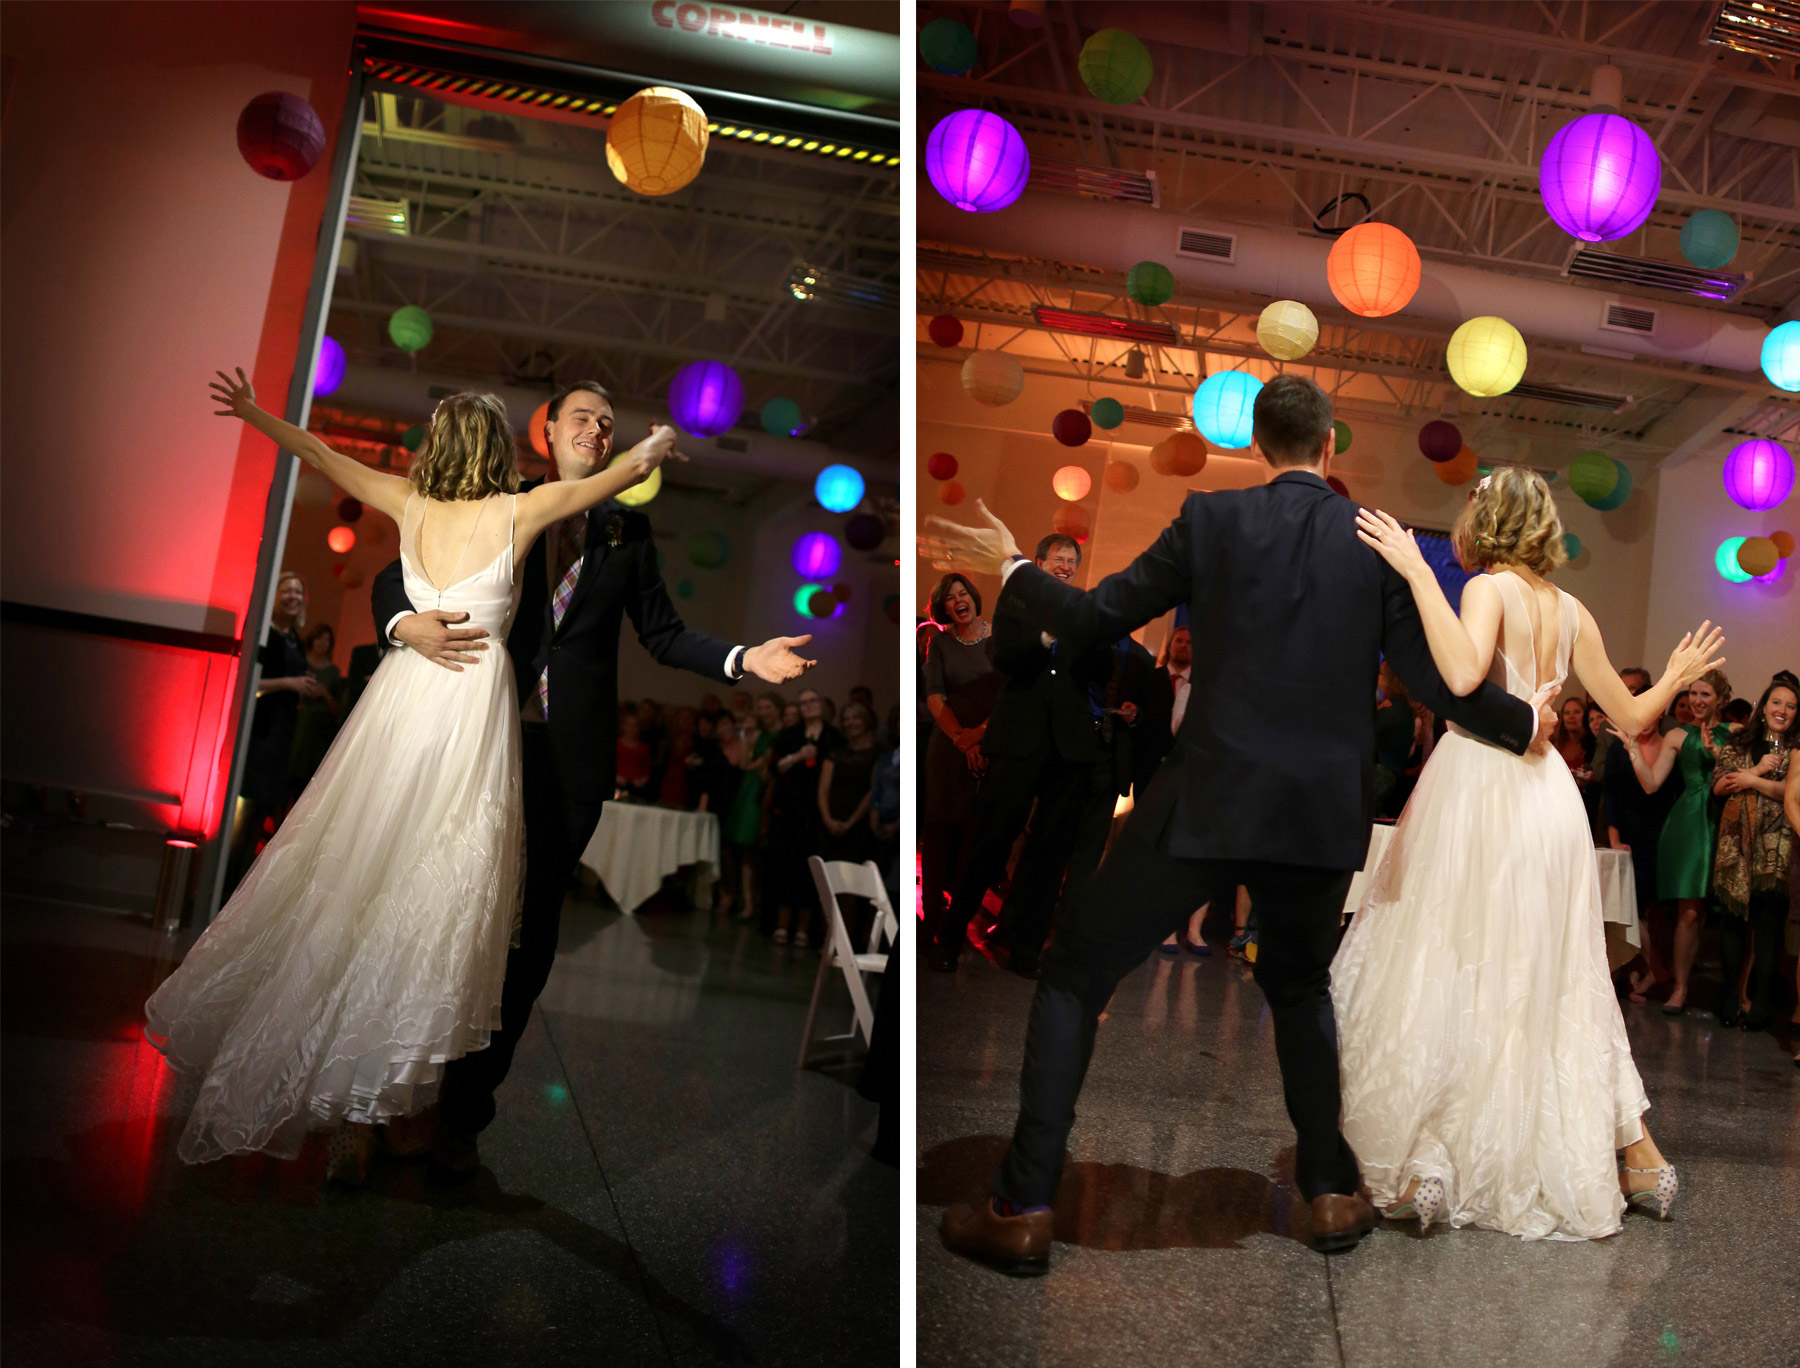 13-Minneapolis-Minnesota-Wedding-Photography-by-Vick-Photography-Reception-Colorful-Decor-Dance-Madeline-&-Matt.jpg